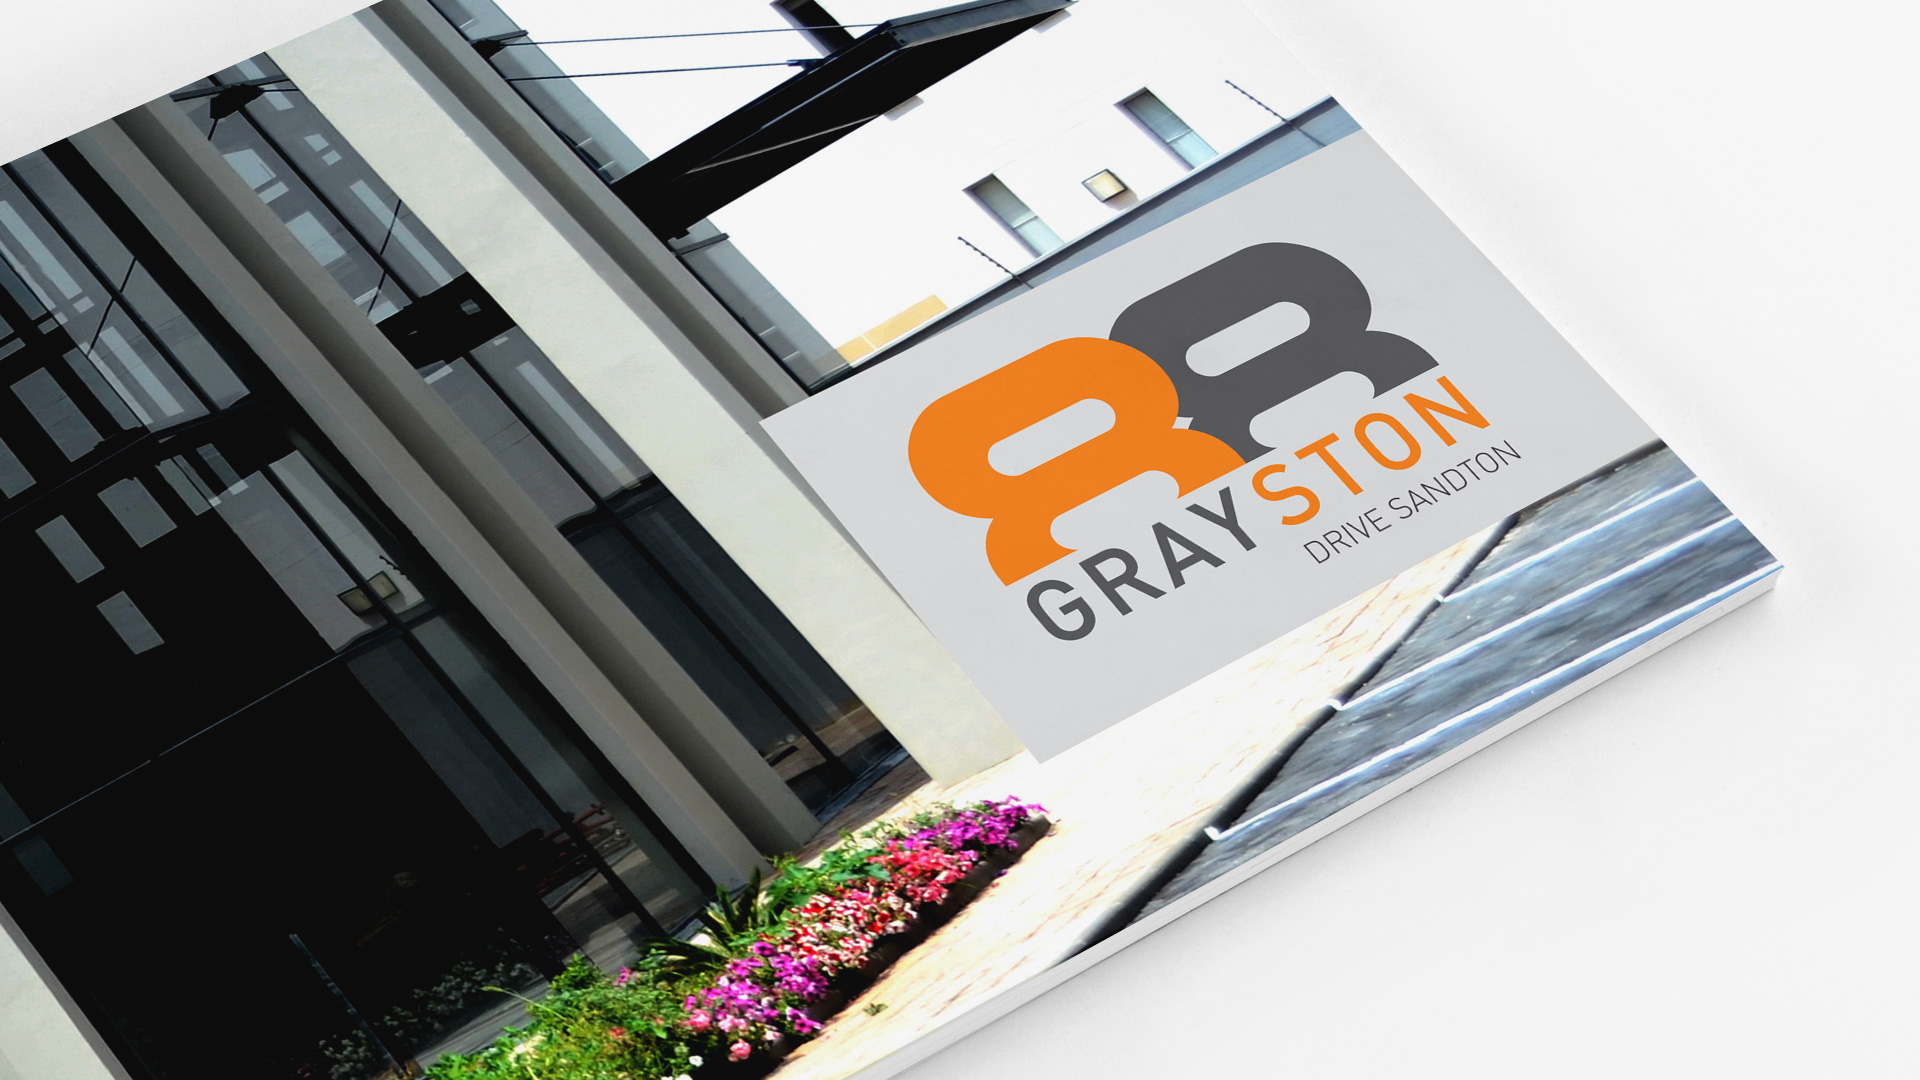 88grayston_zoom_01